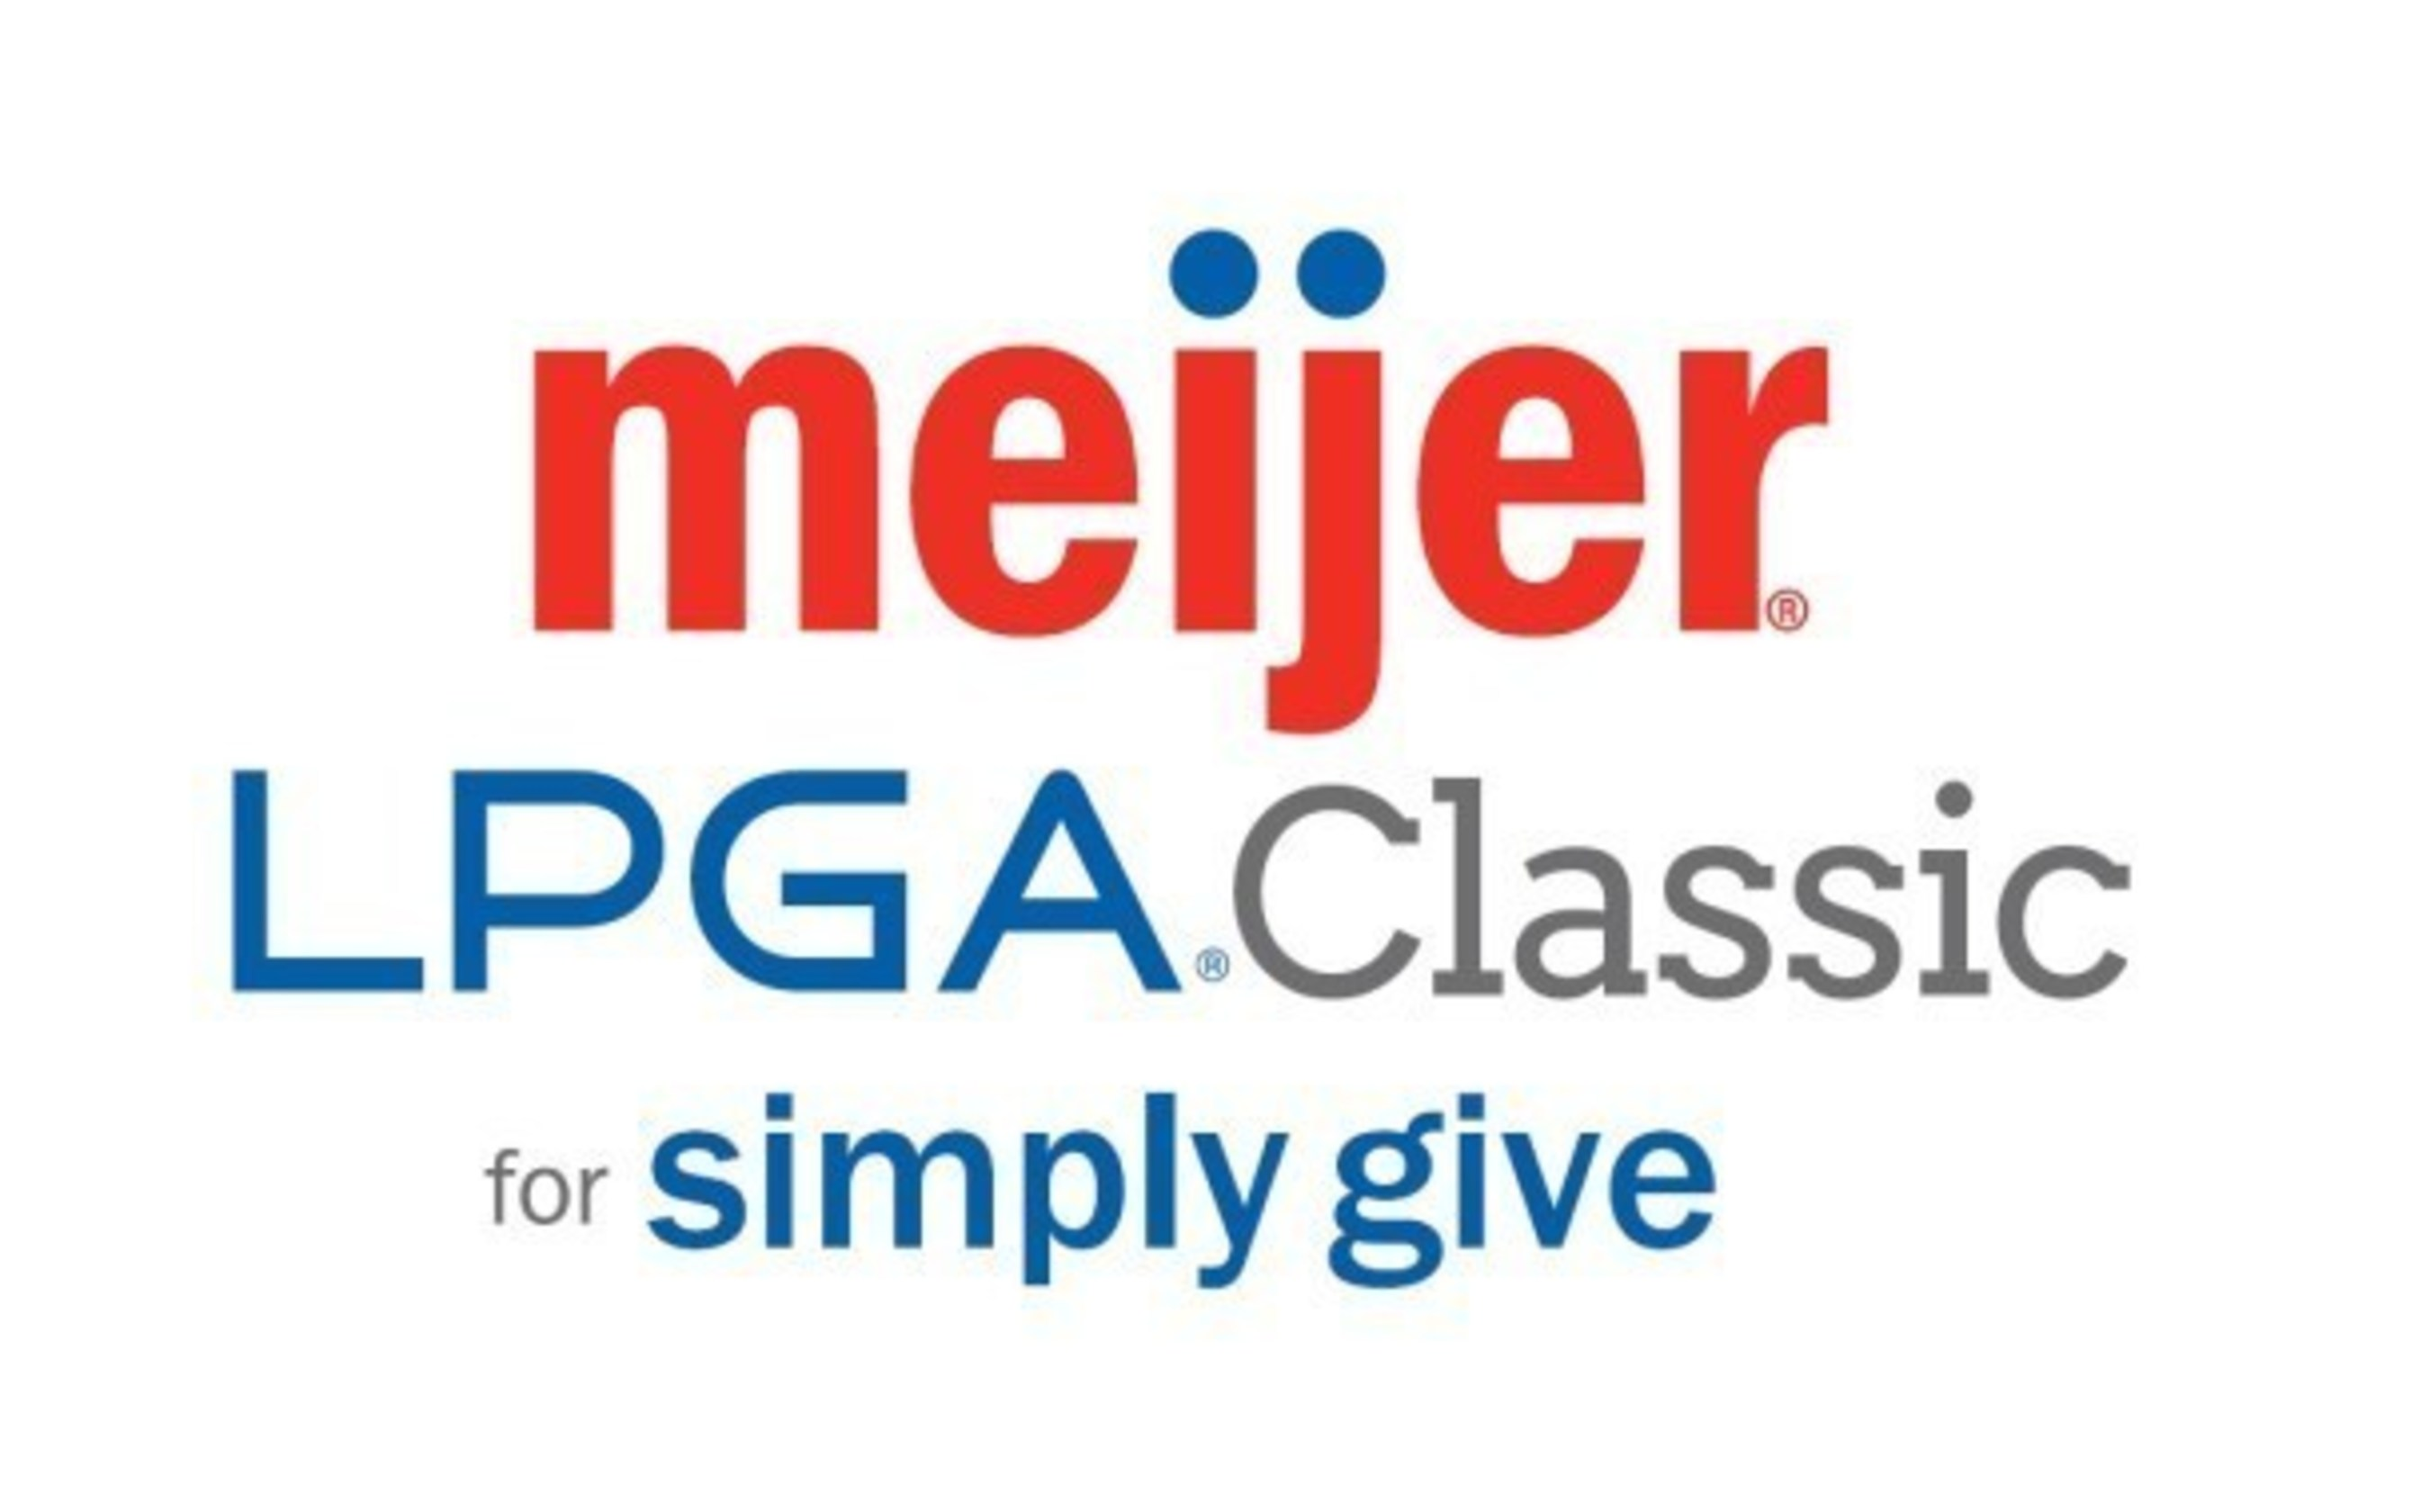 The 2016 Meijer LPGA Classic for Simply Give tournament will be held June 13-19 at Blythefield Country Club, and benefit Meijer's Simply Give program that restocks the shelves of food pantries across the Midwest.